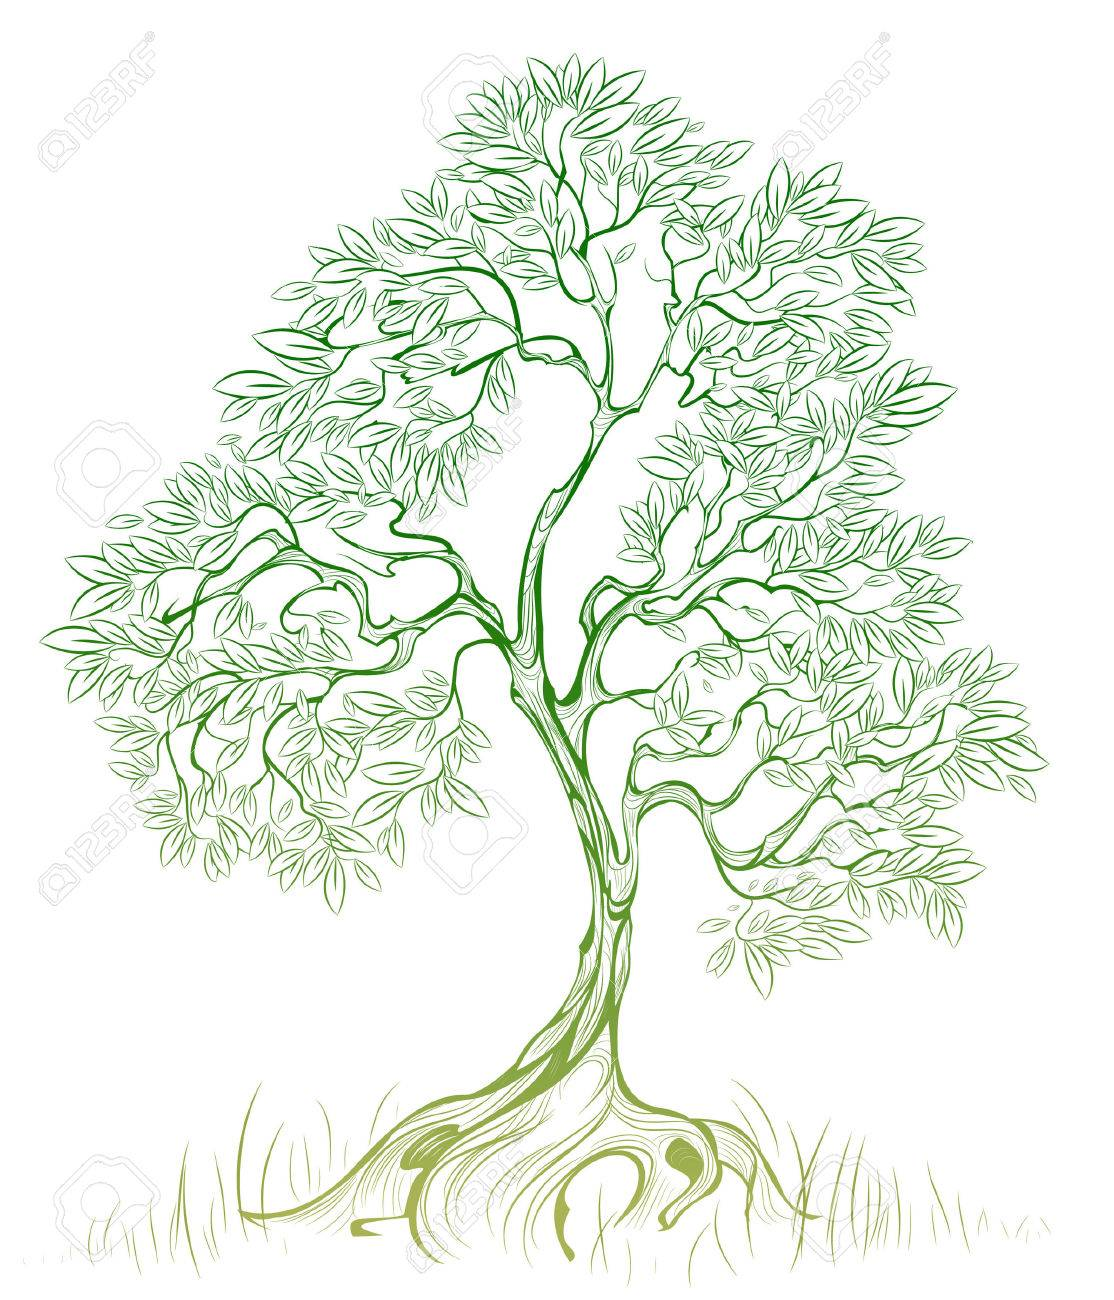 green, artistic tree on a white background Stock Vector - 23284526